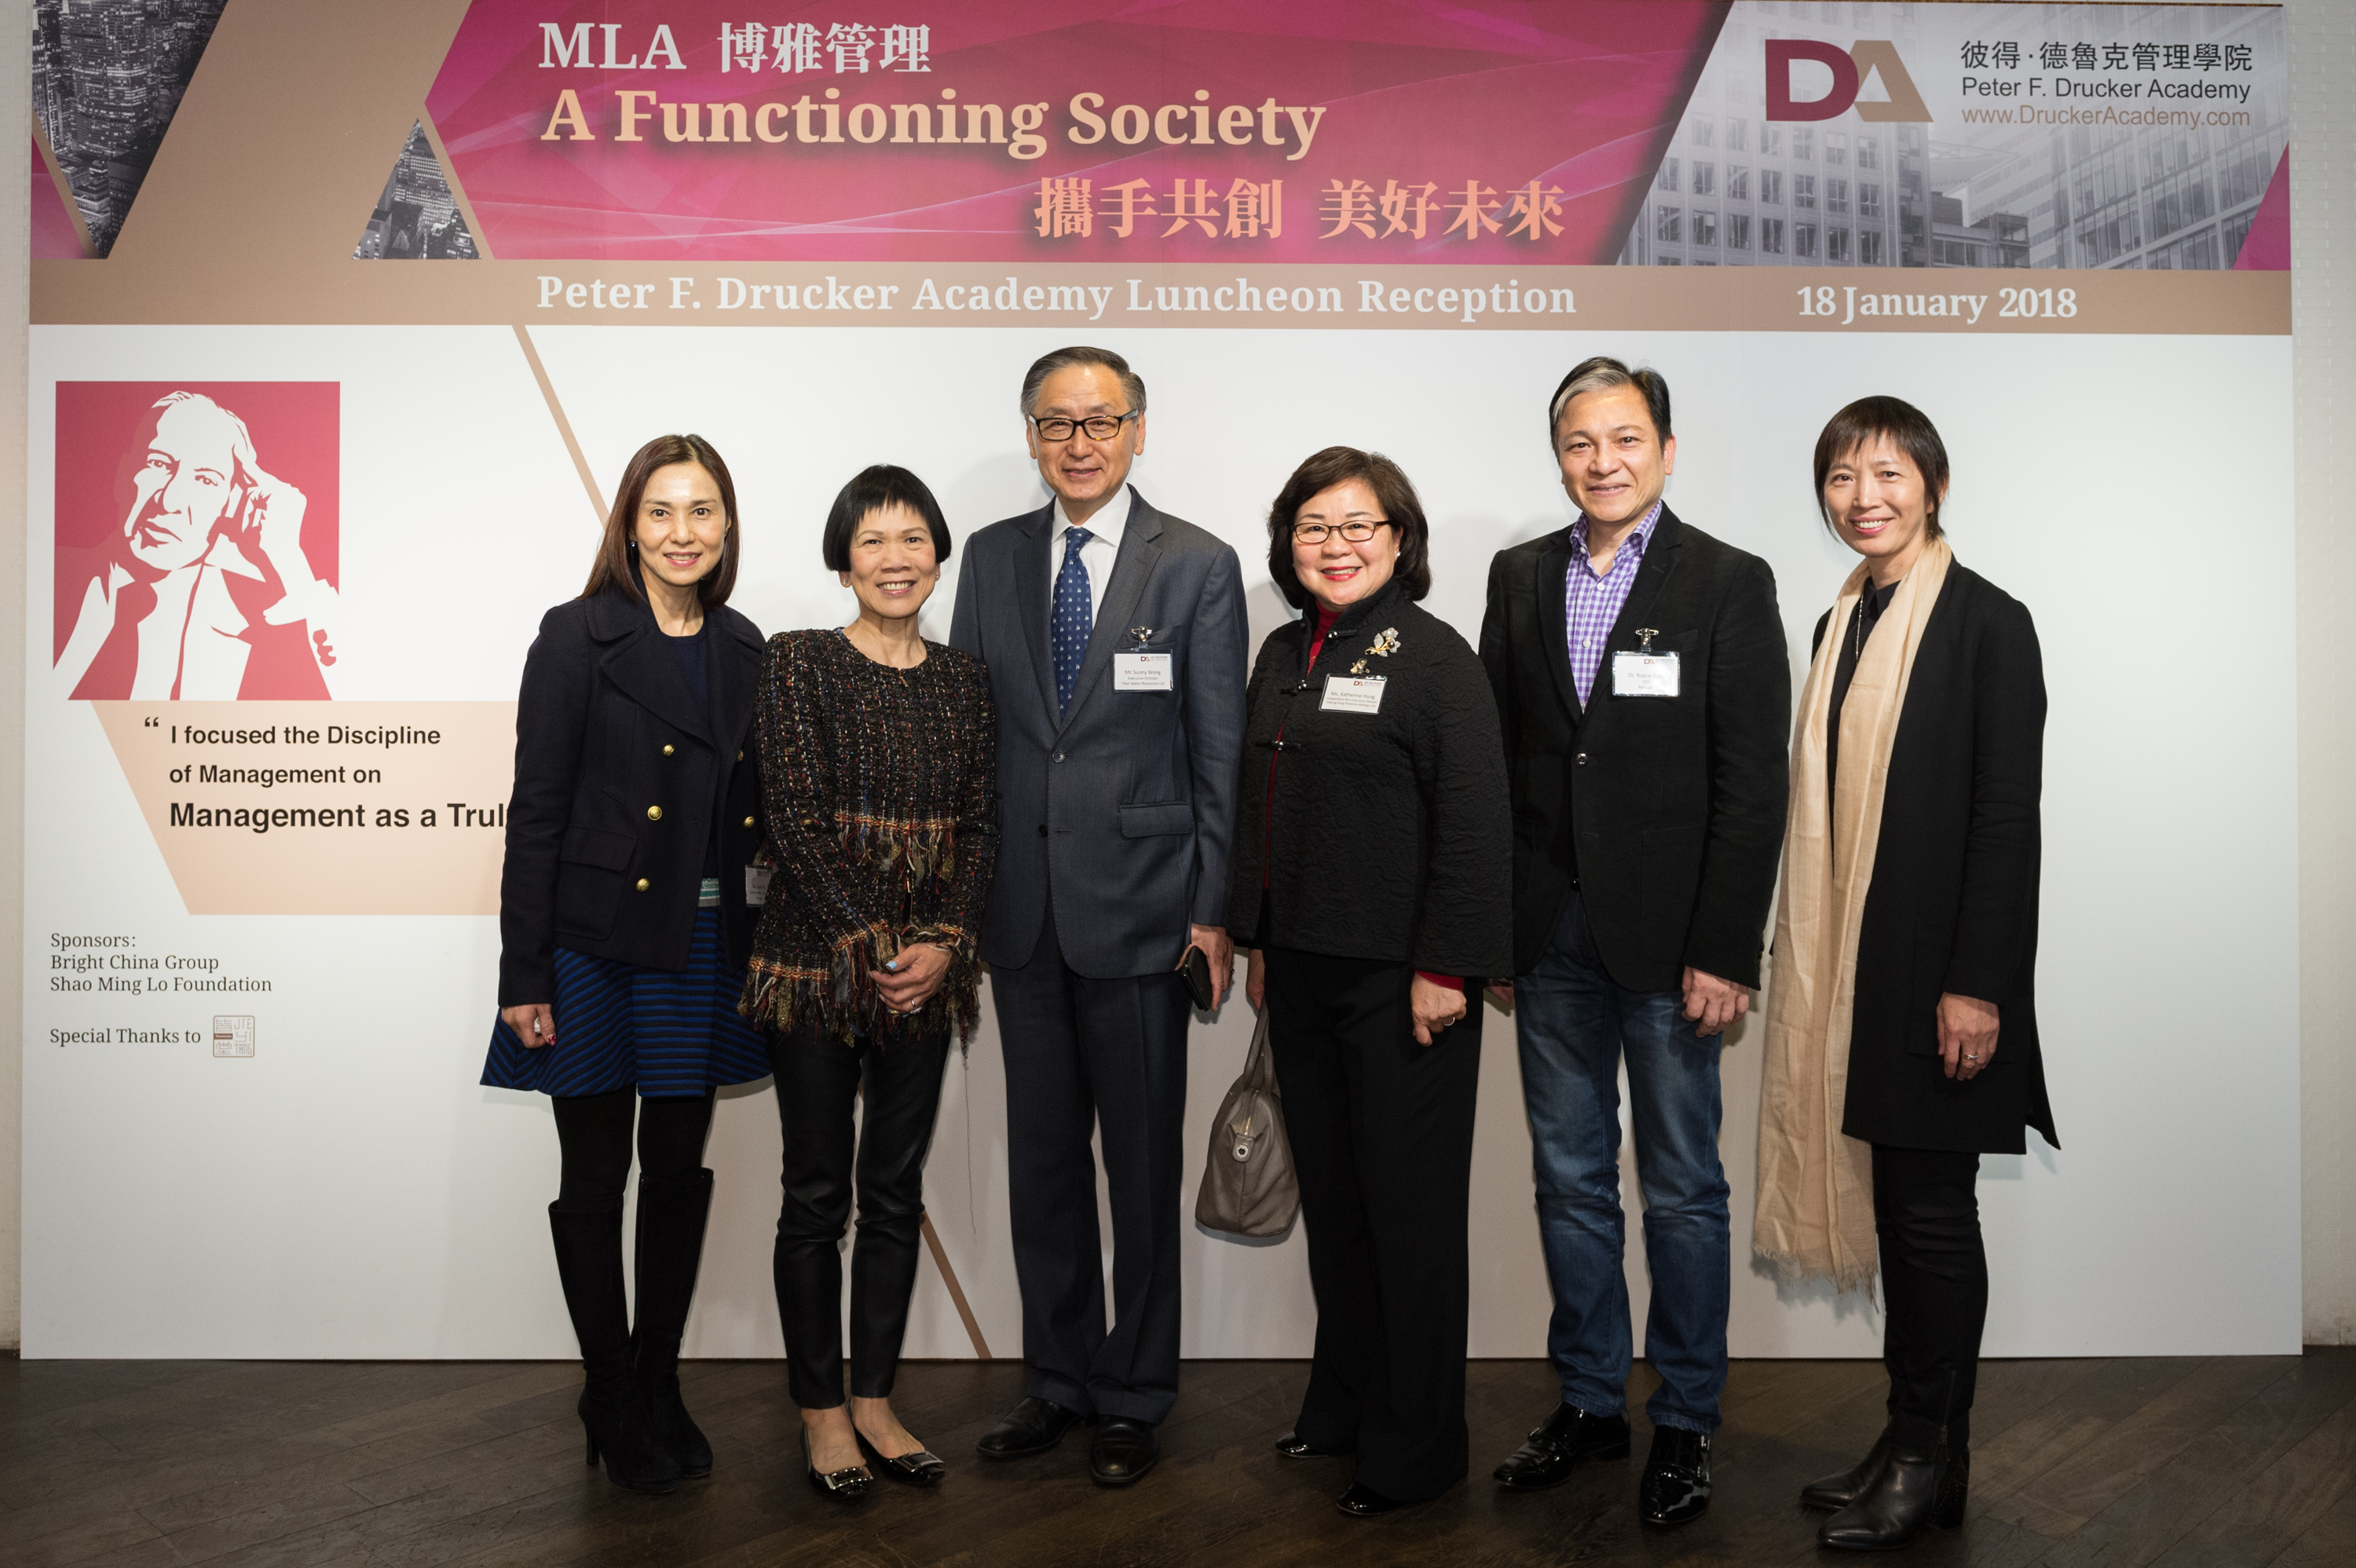 DAHK Luncheon Reception 2018